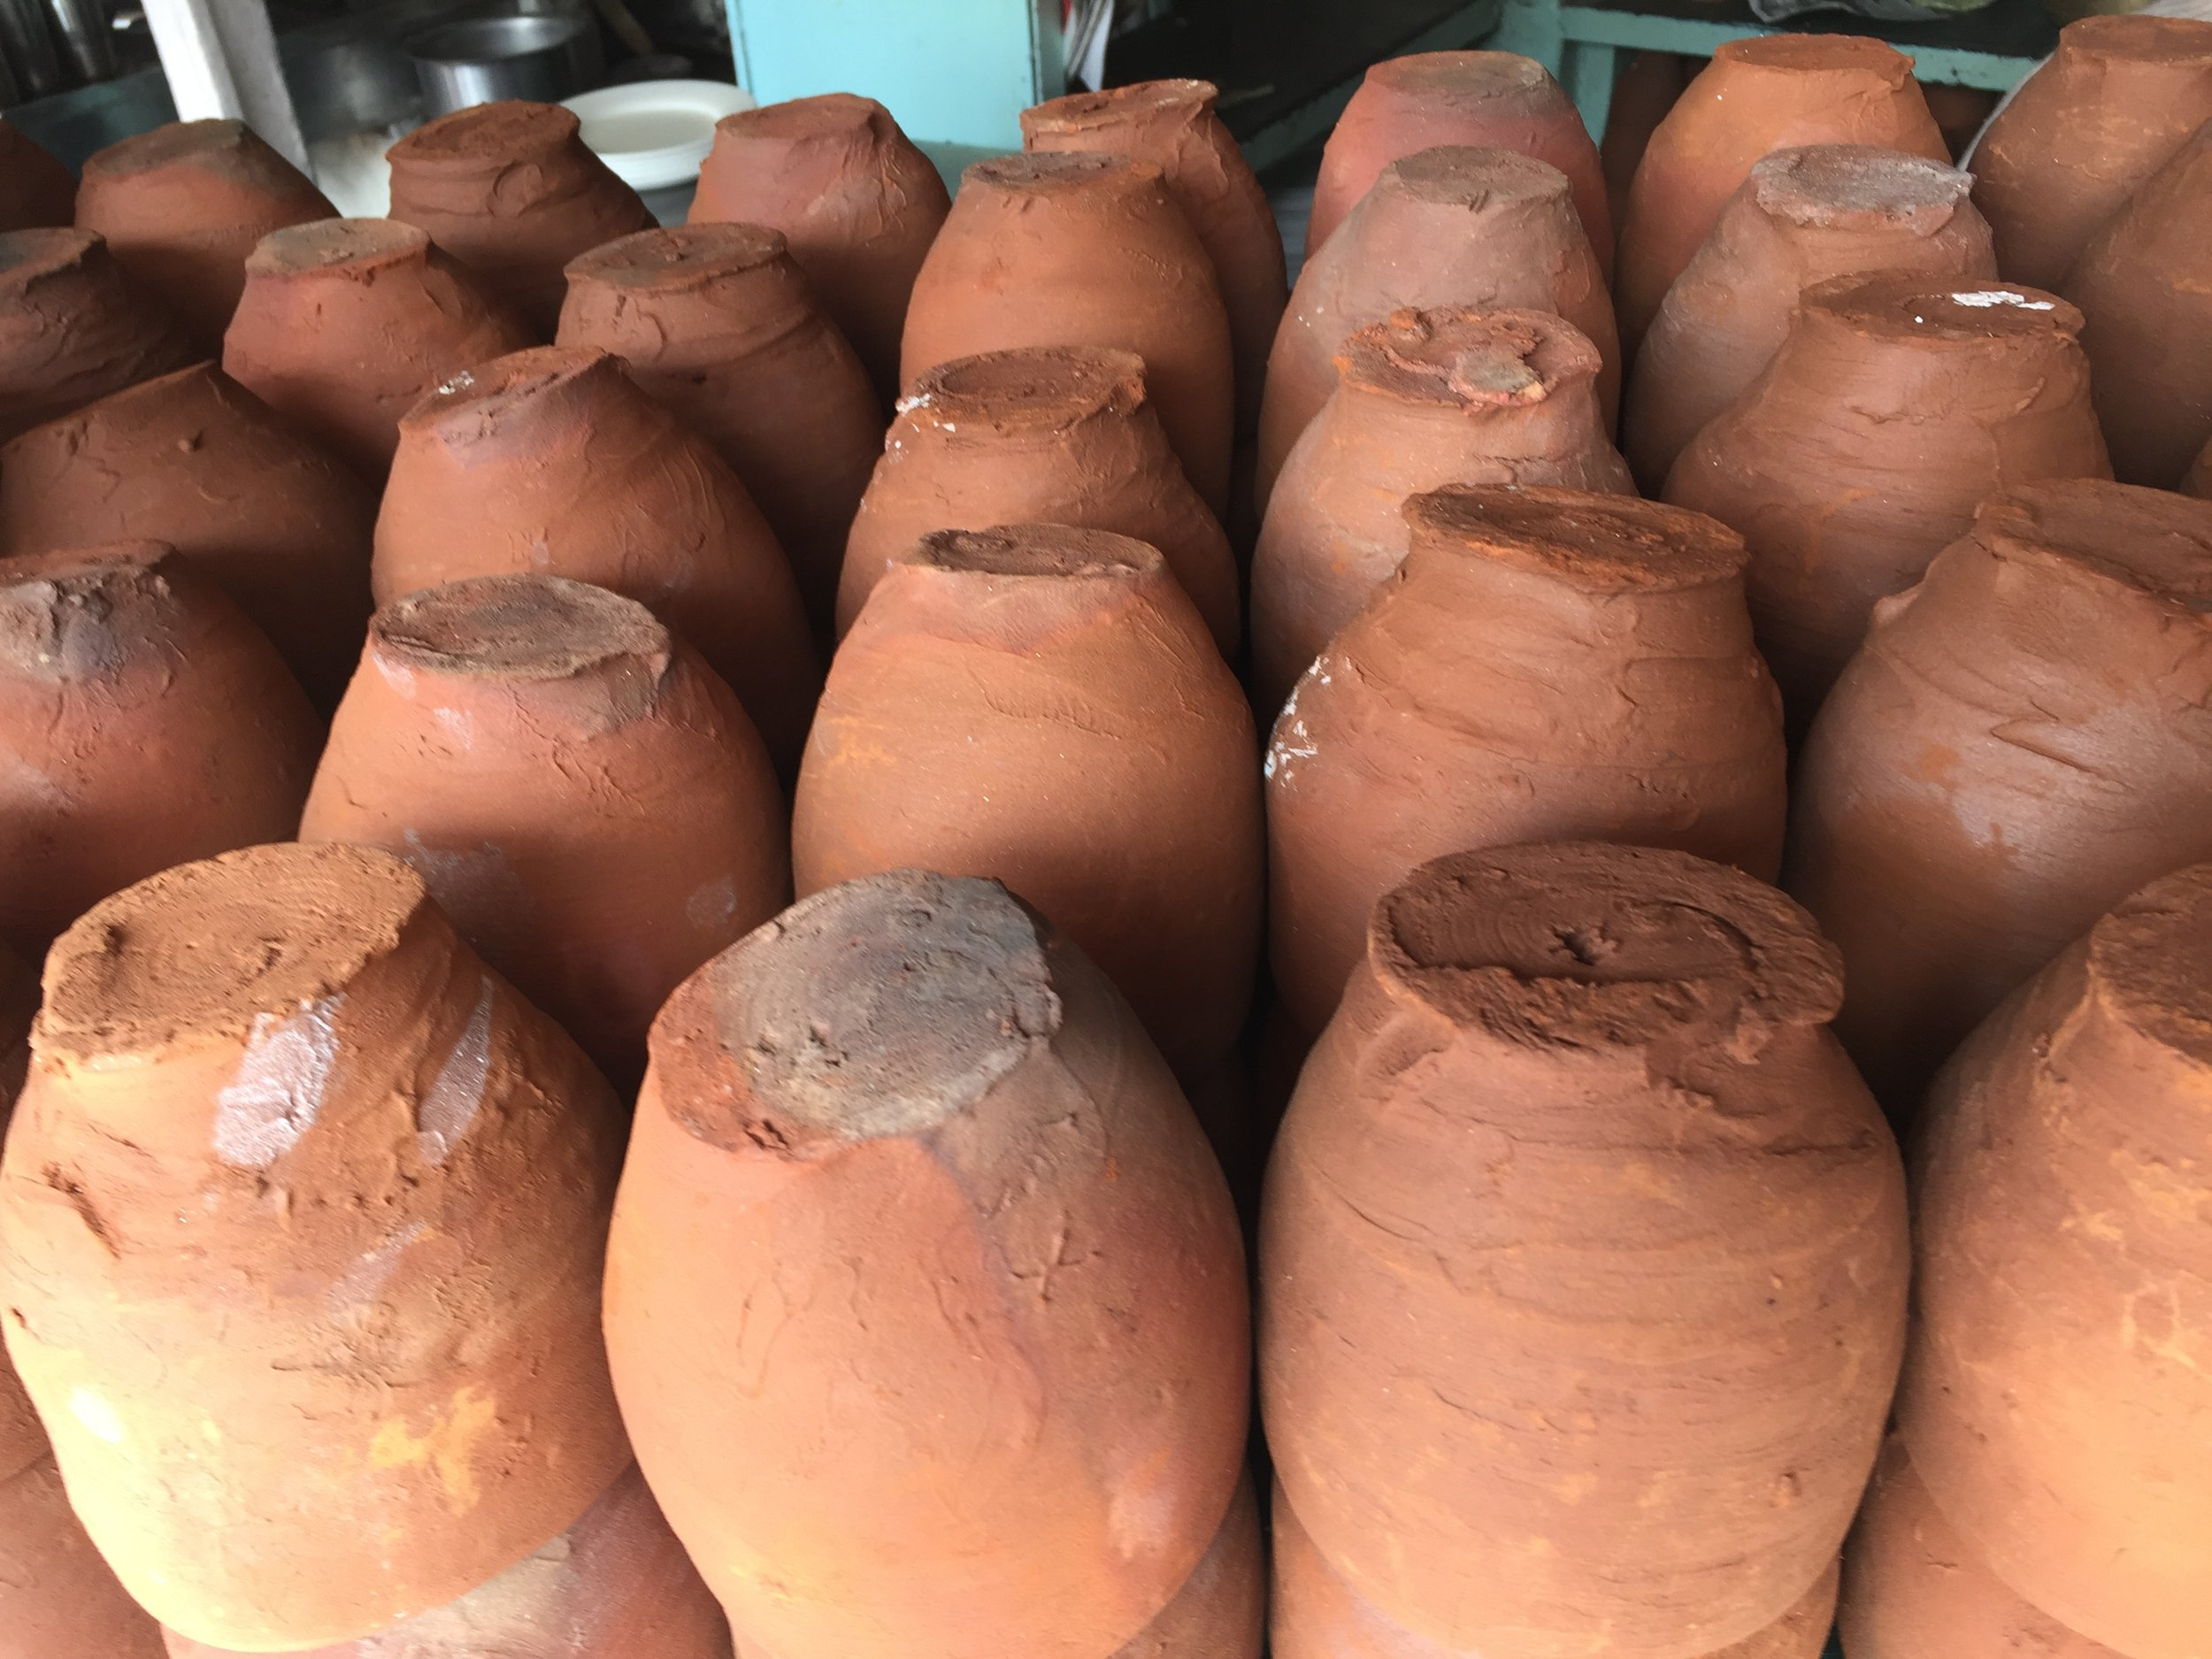 Clay pots for serving Chole Chawal in Chandni Chowk